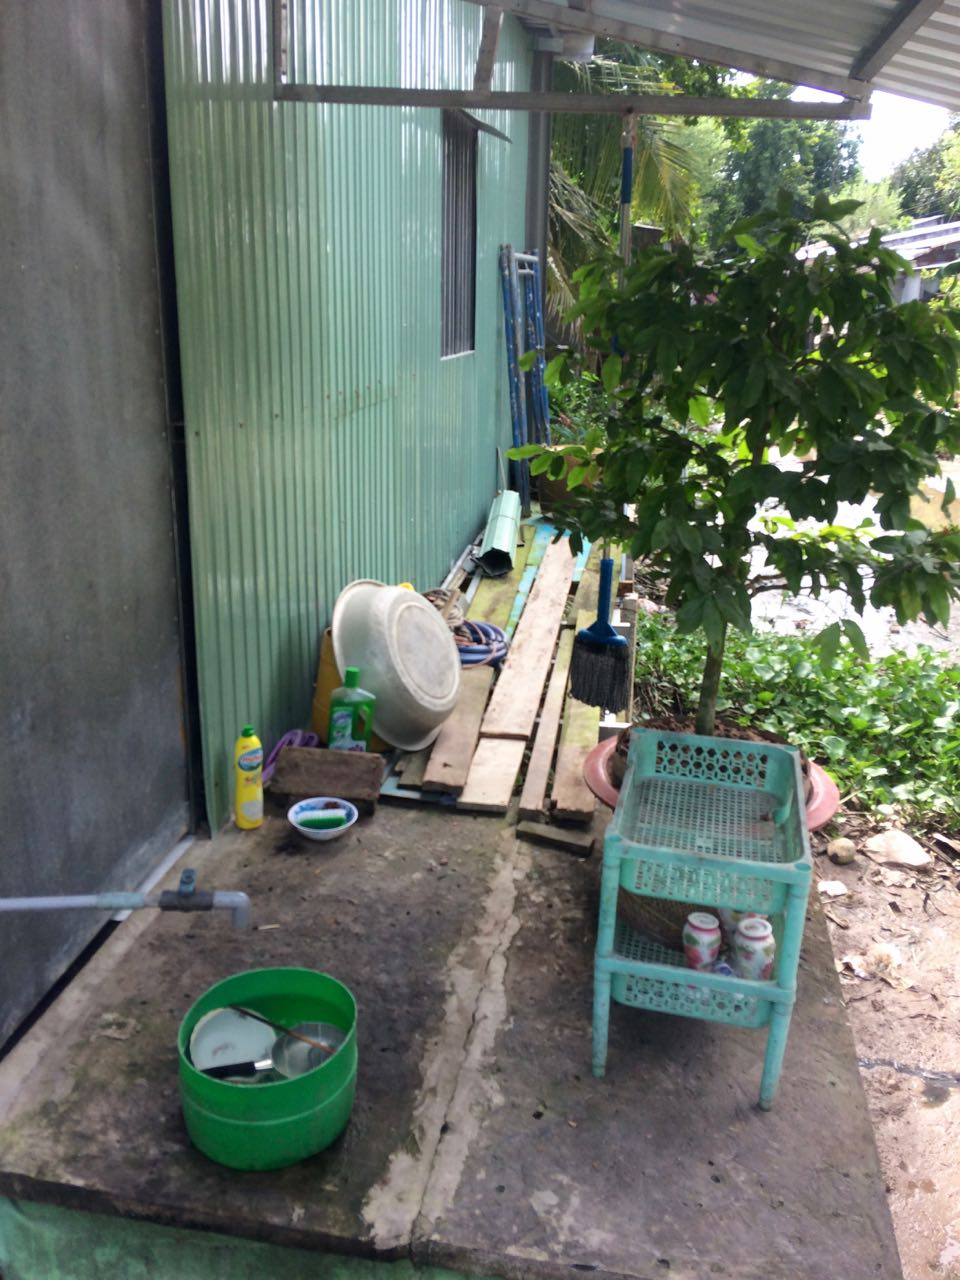 Household piped water access in Thốt Nốt District, Cần Thơ City, Vietnam (Photo: Sarah Allen)